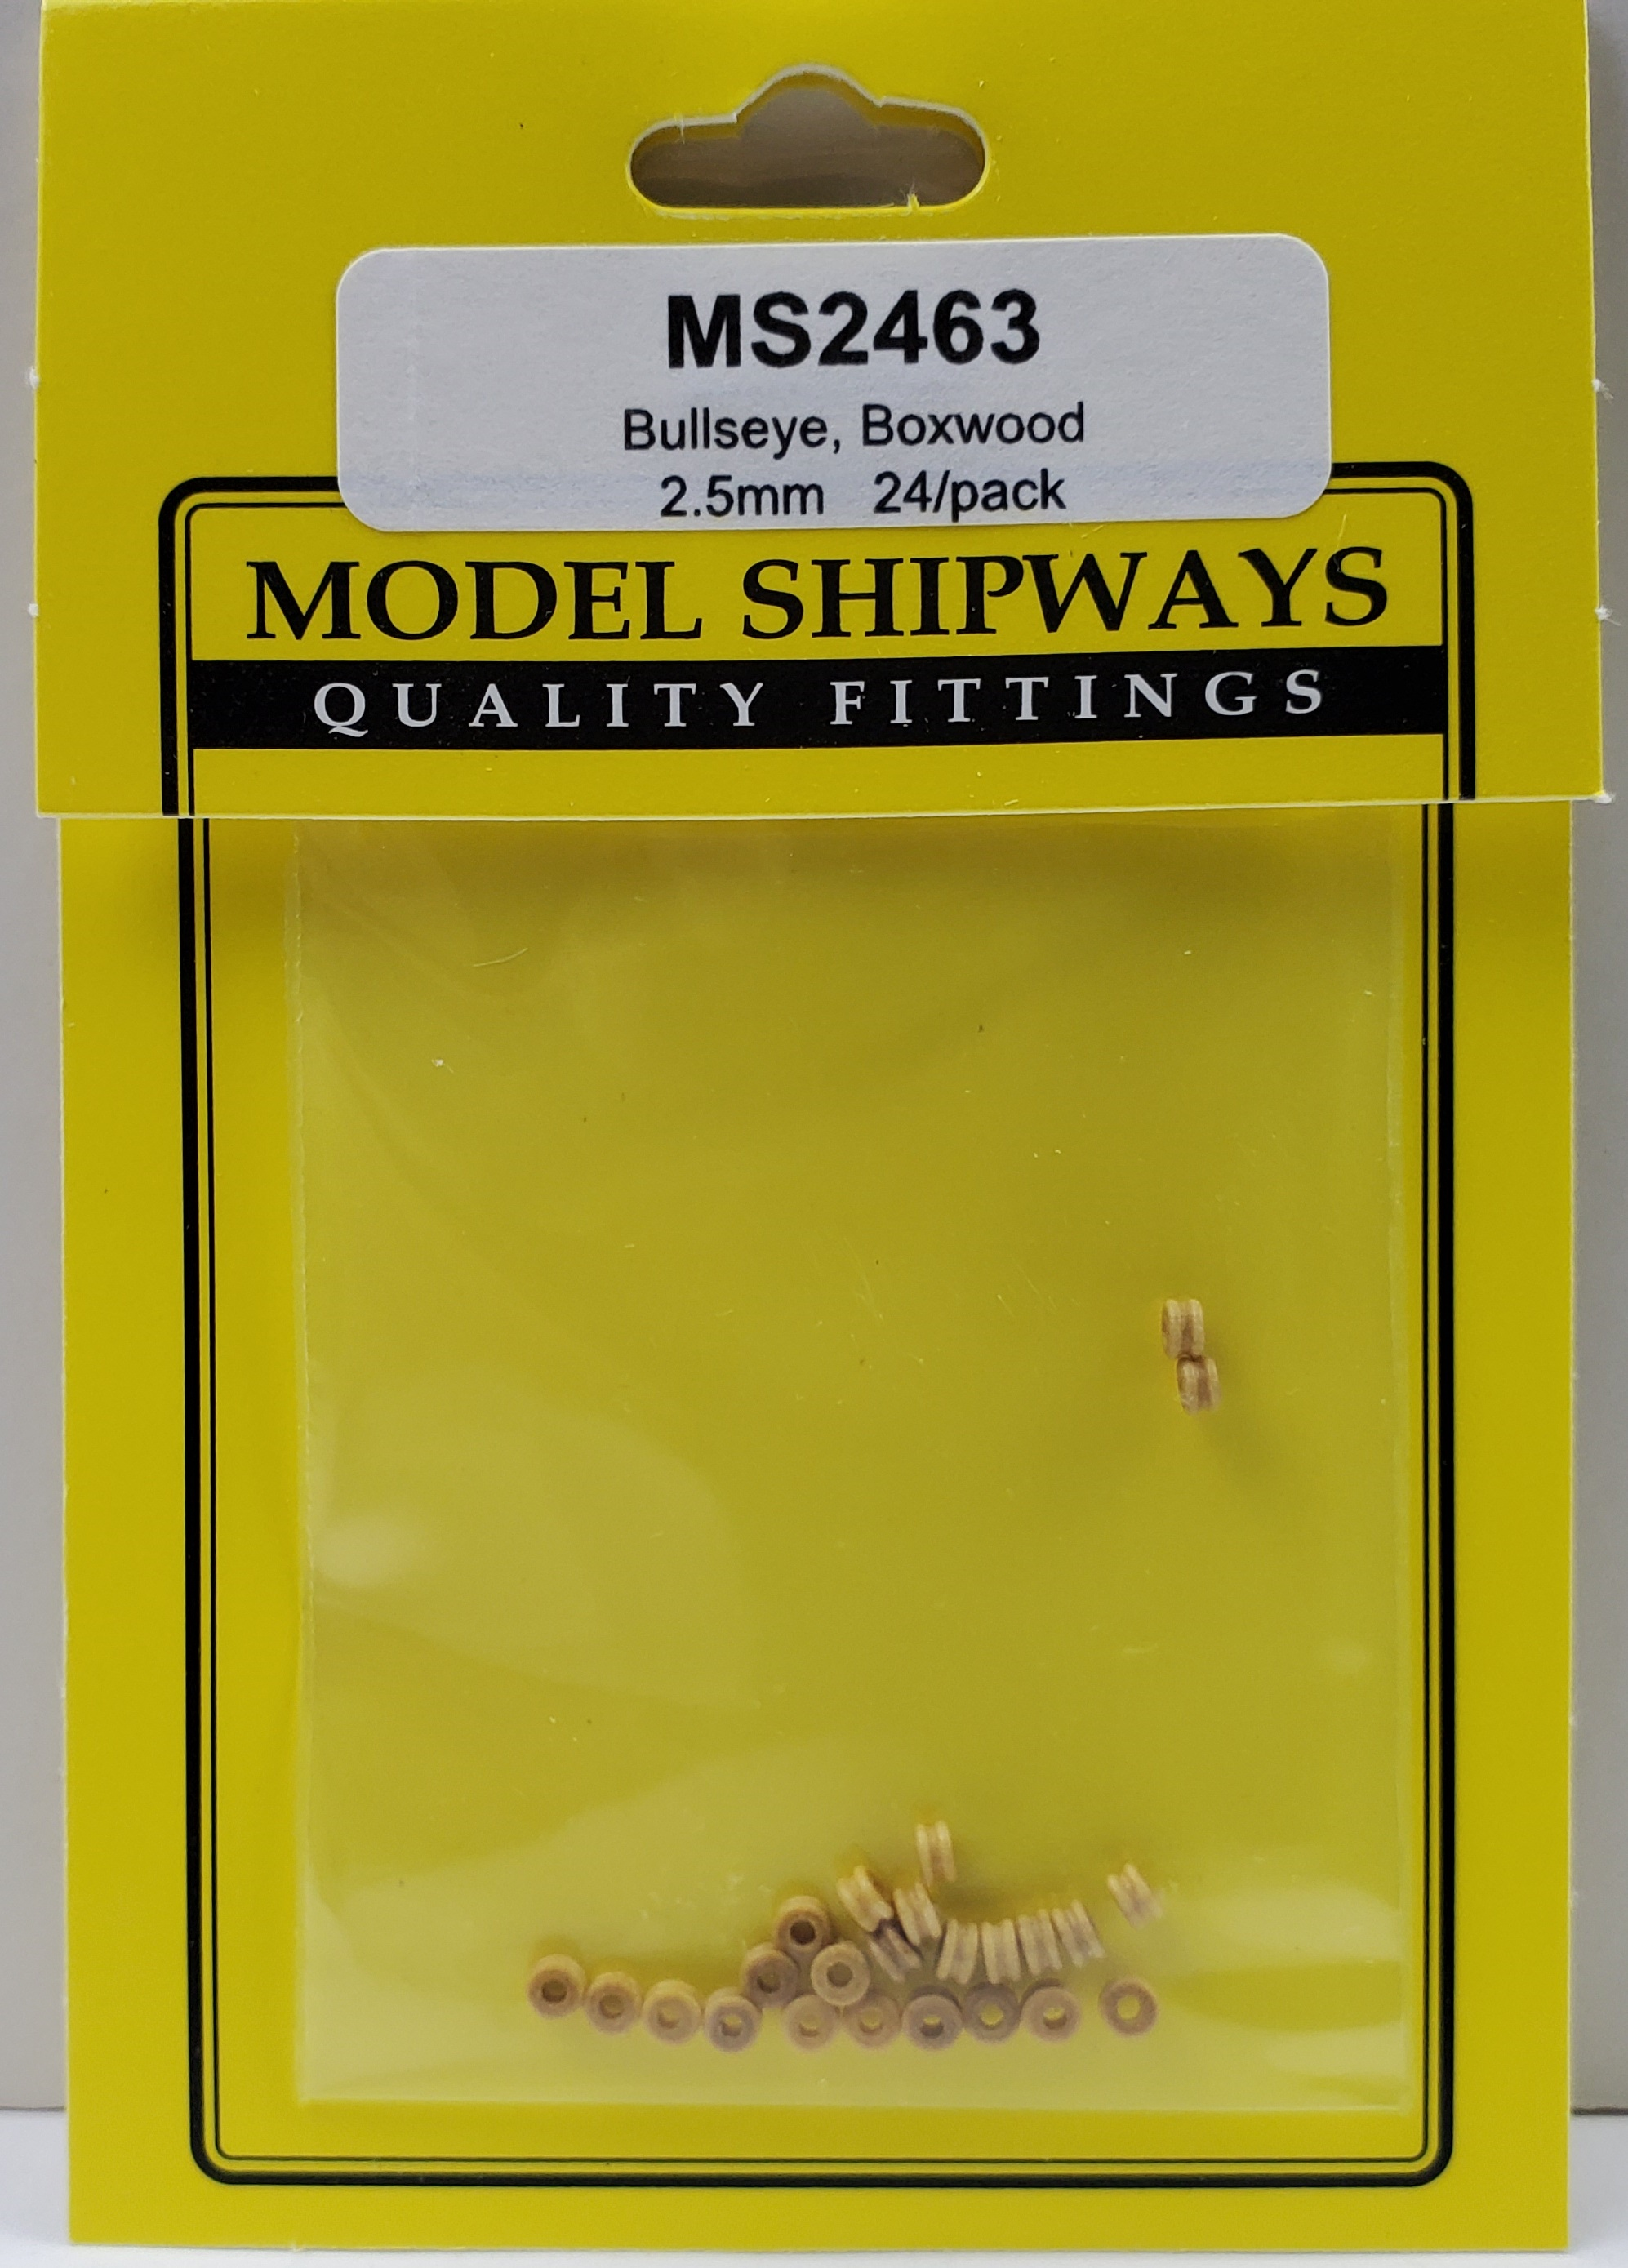 Model Shipways Bullseye, Boxwood 3.5mm24 pack